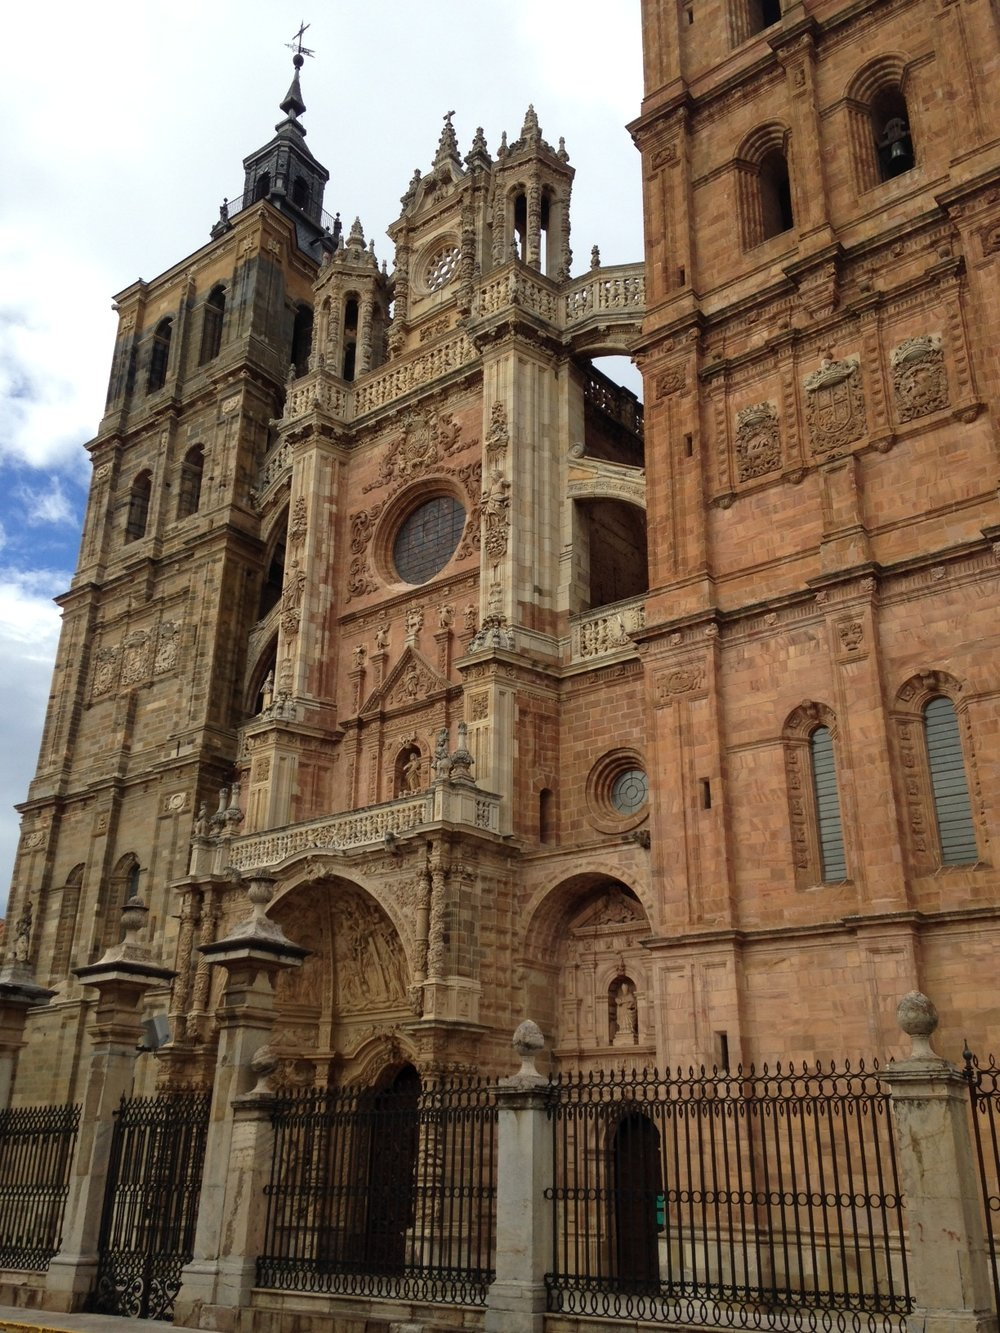 Astorga was lovely. With a beautiful cathedral too.